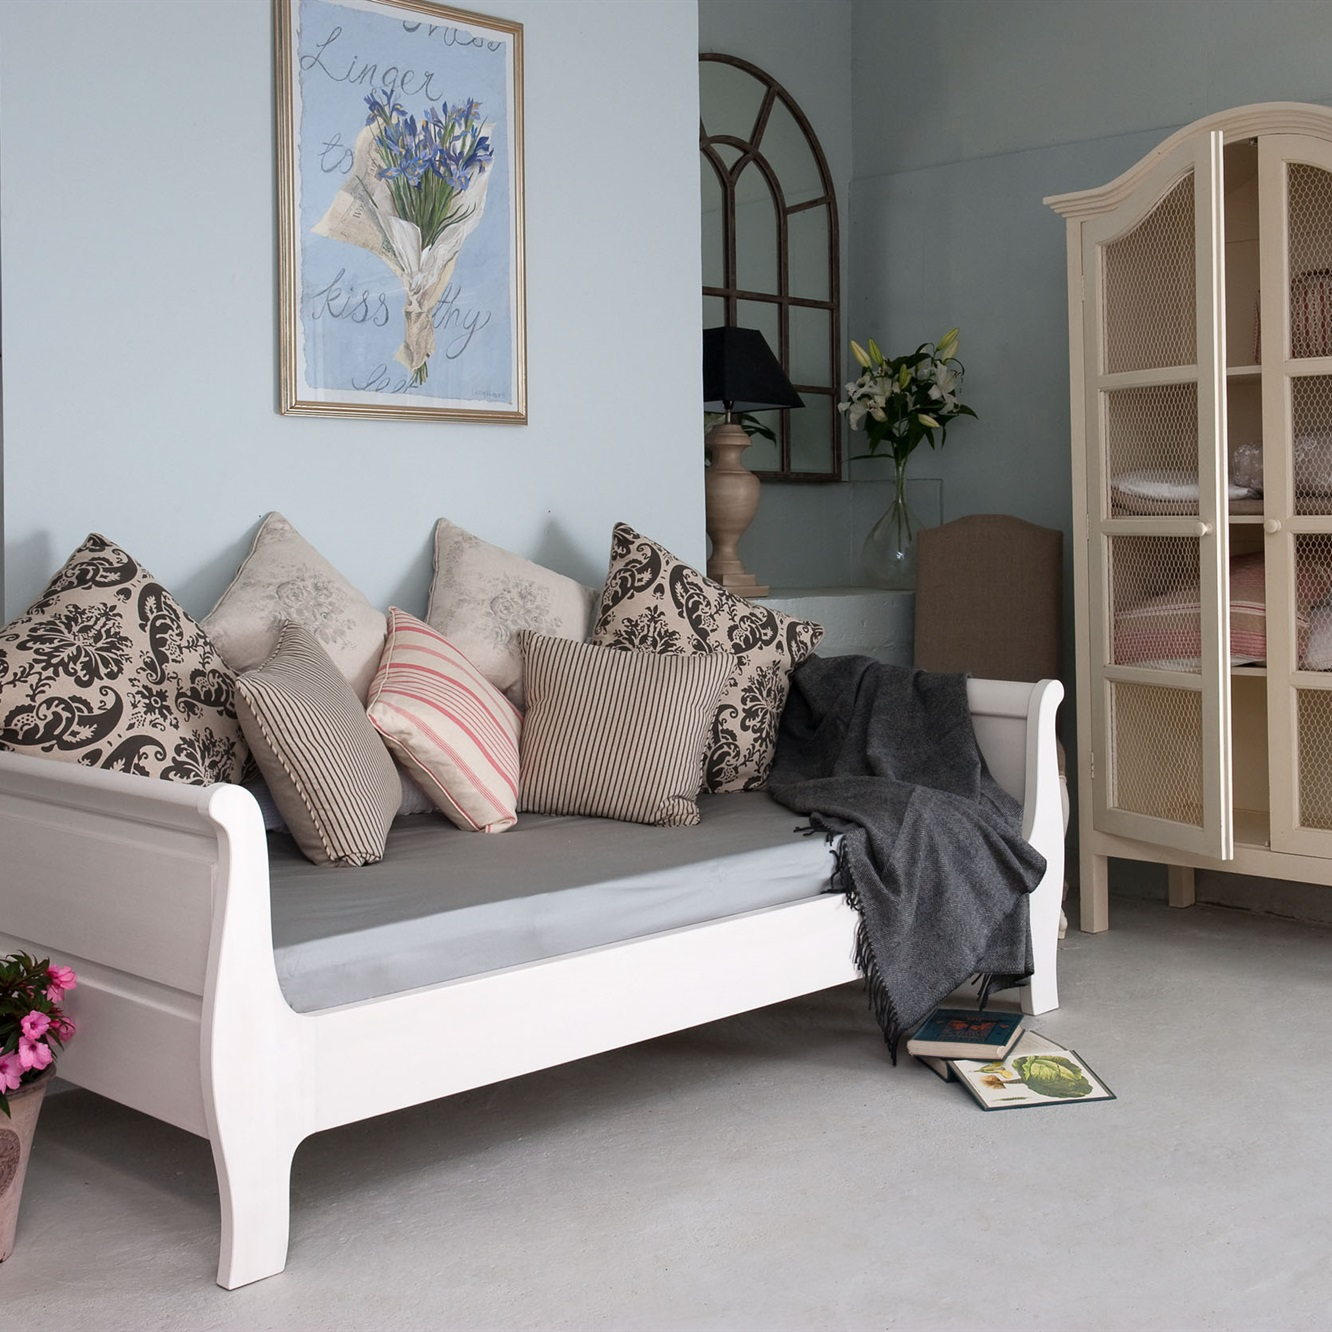 Lit Bateau Daybed